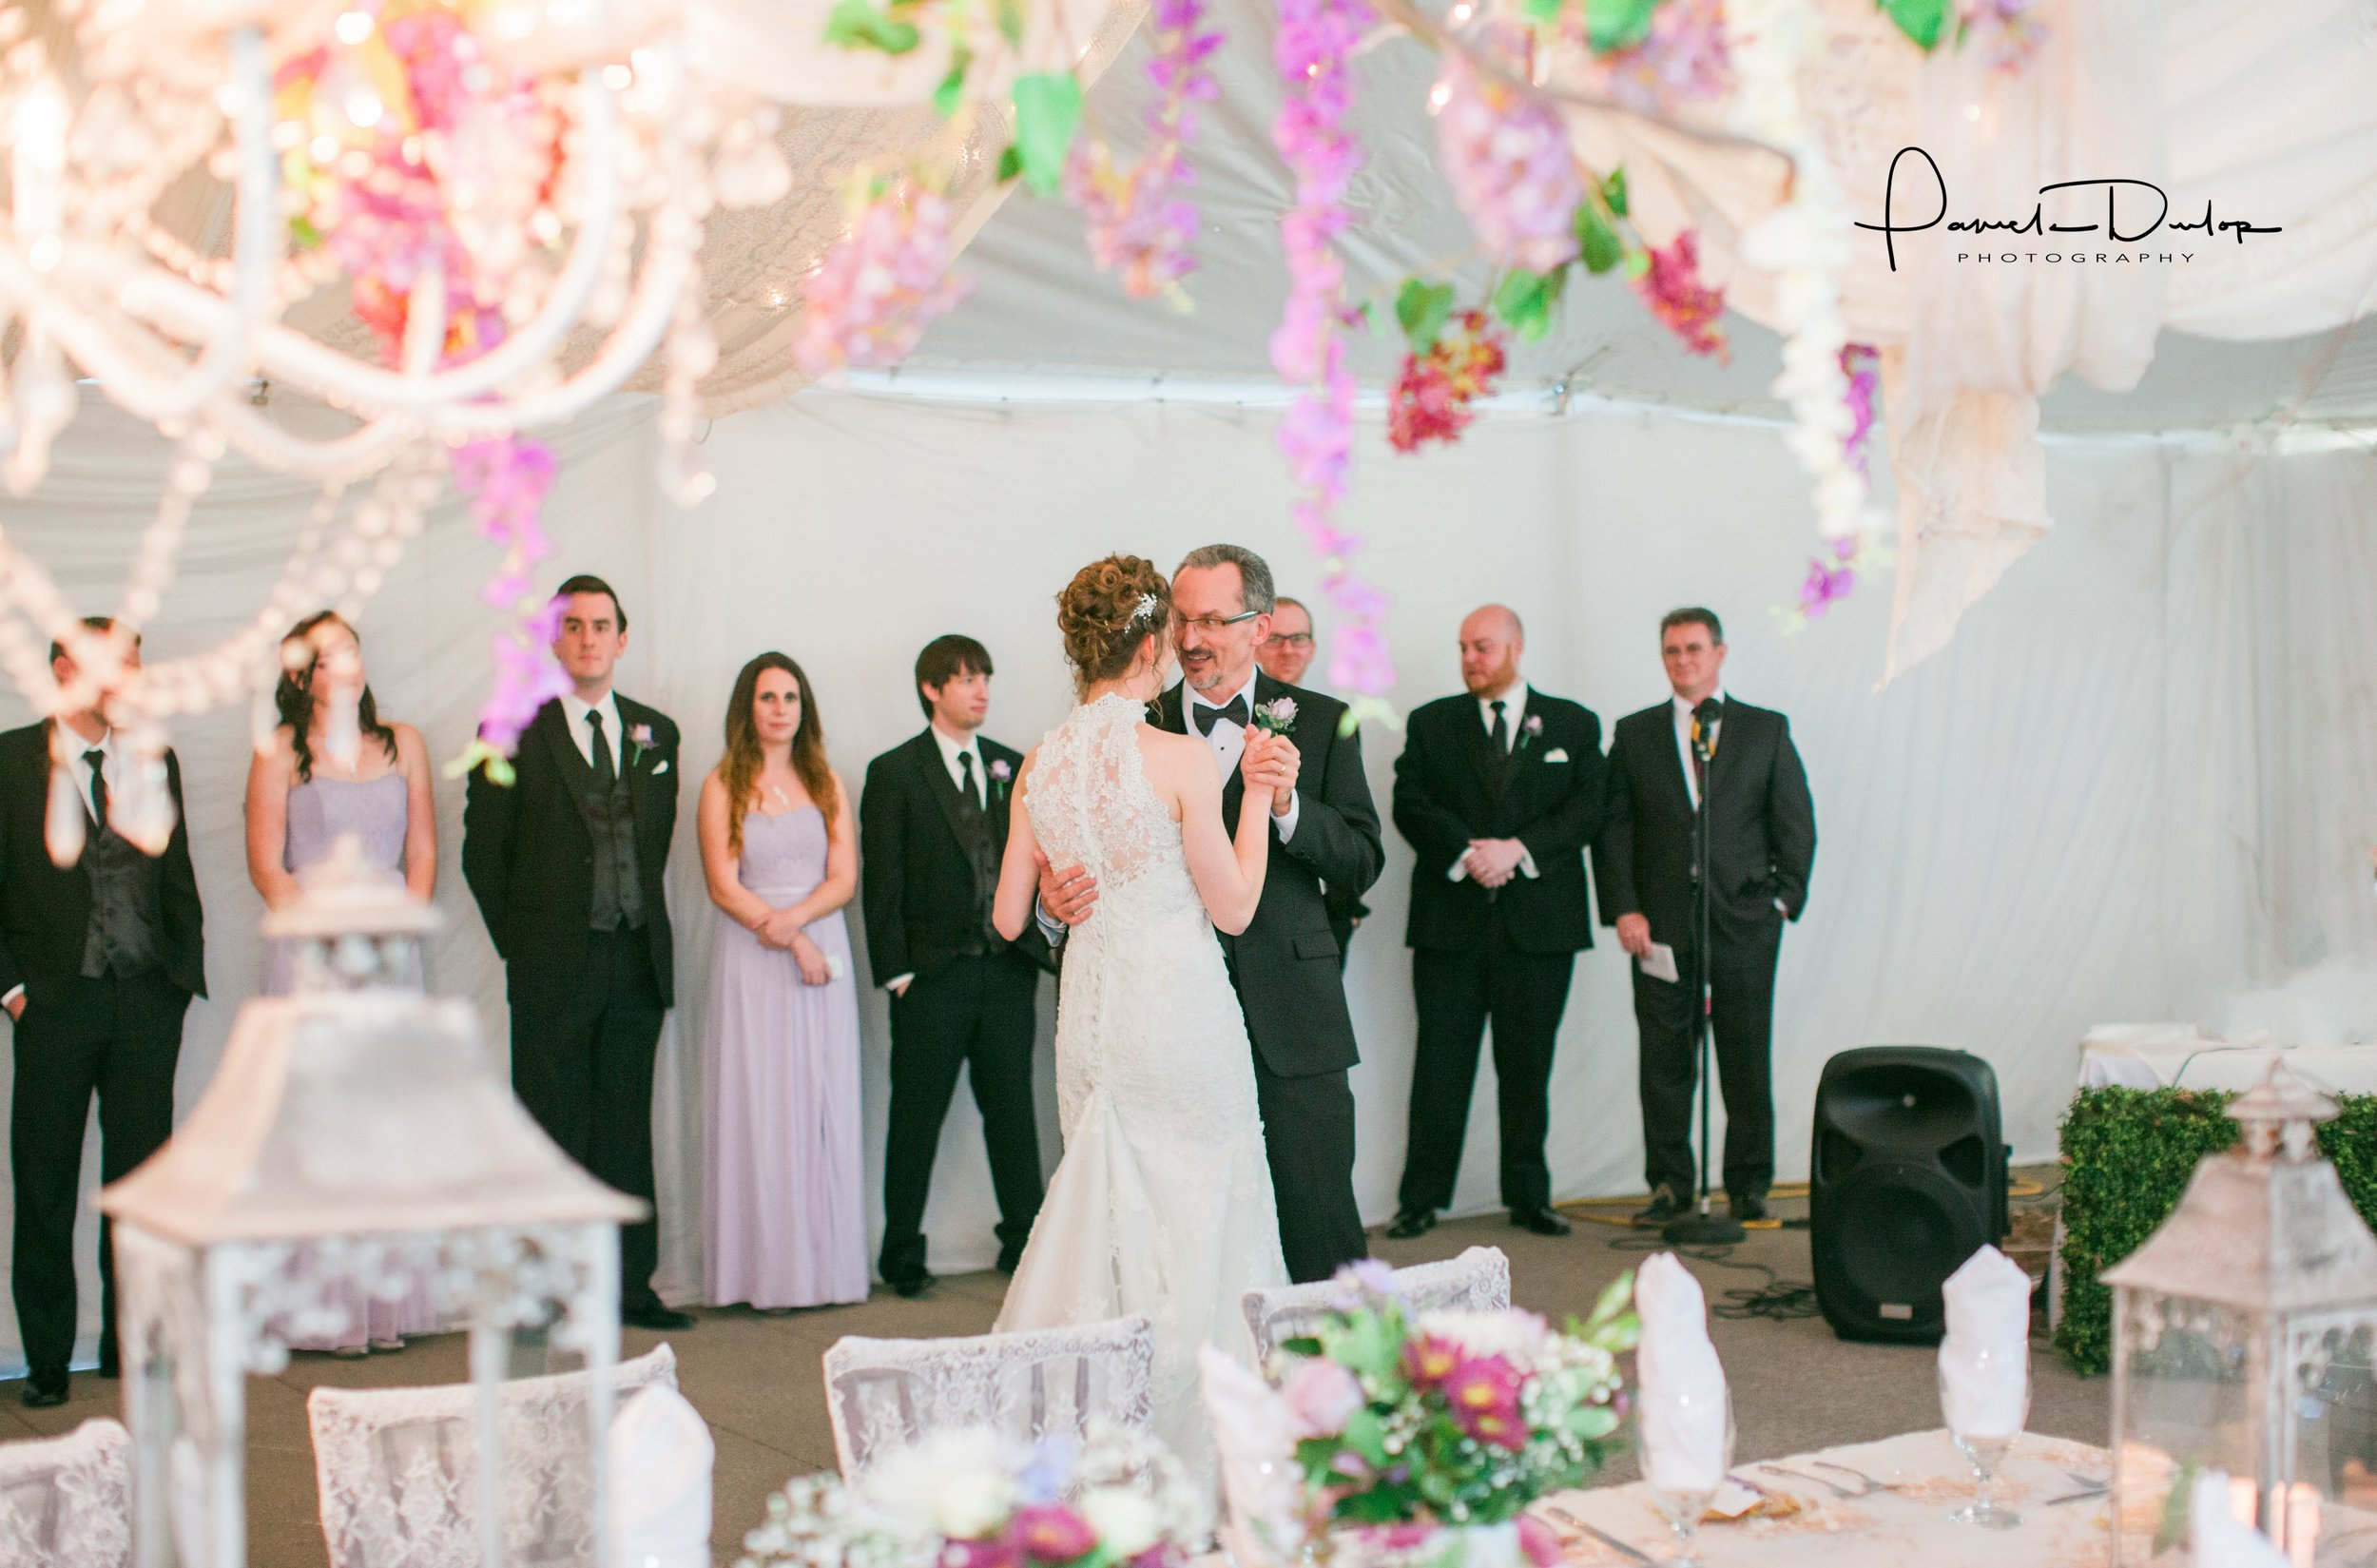 Weddings - Packages Starting at $1,000